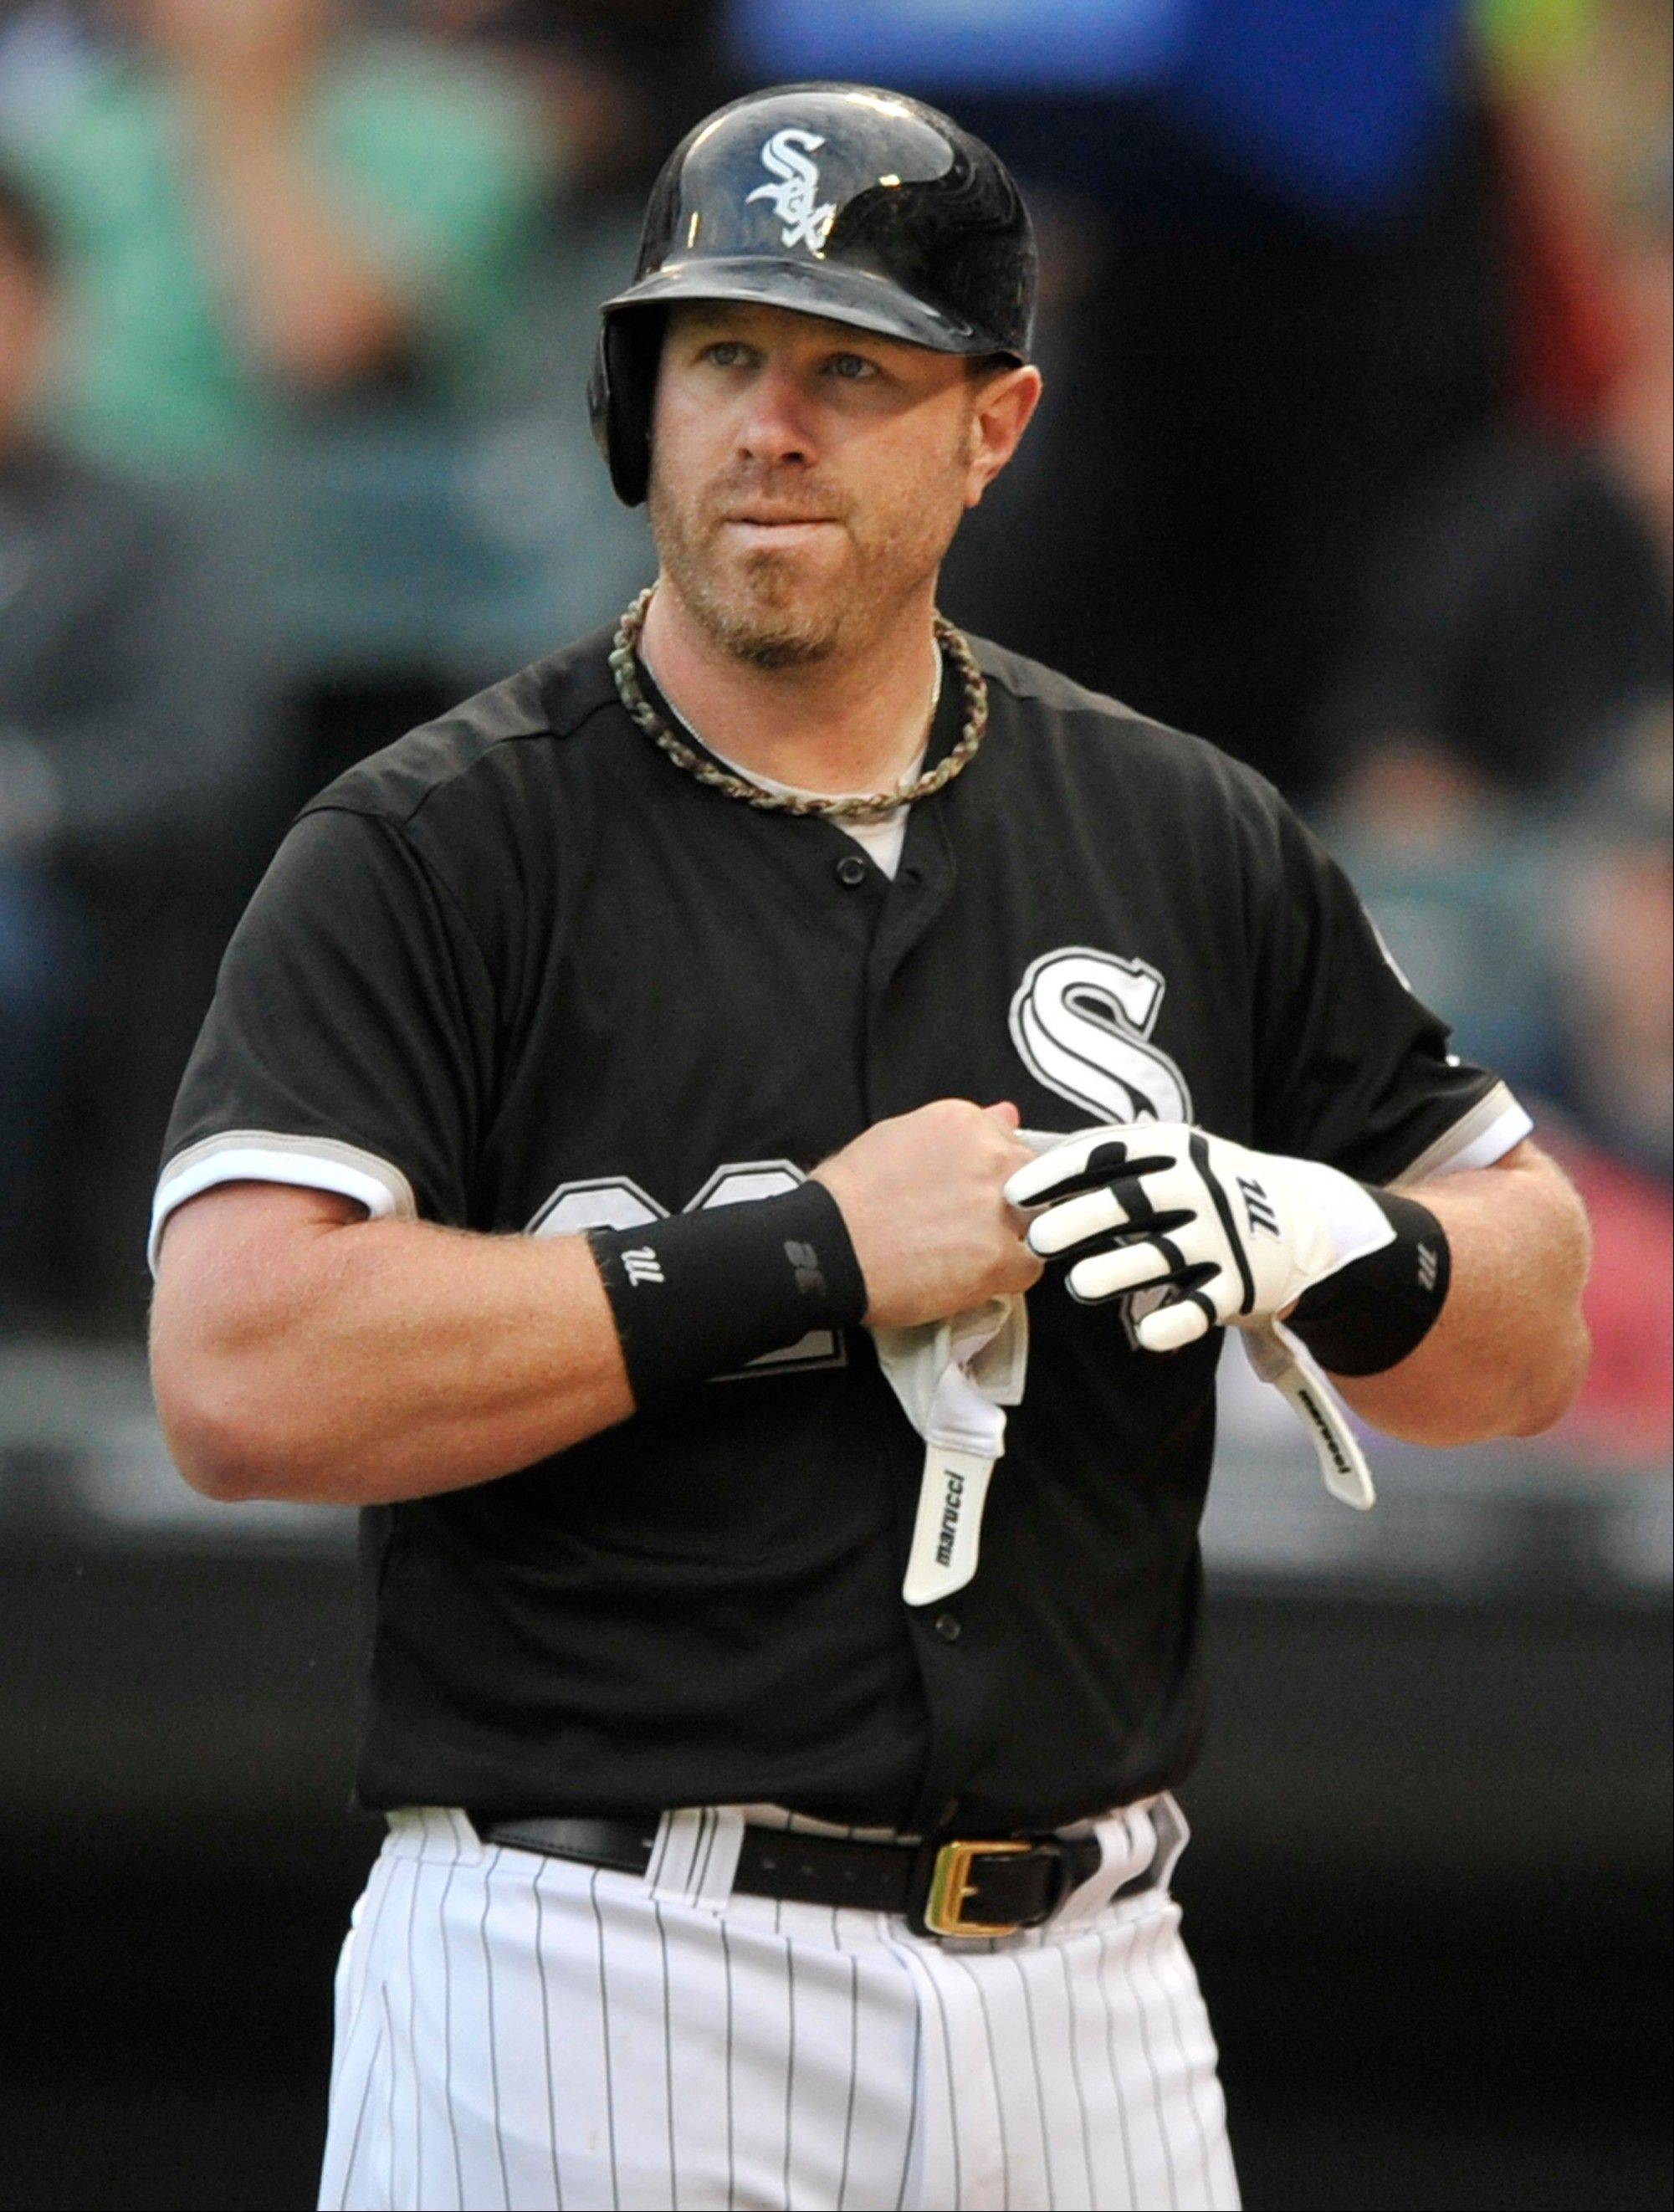 White Sox's Adam Dunn reacts after striking out during the first inning of a baseball game against the Kansas City Royals in Chicago, Saturday, July 27, 2013.